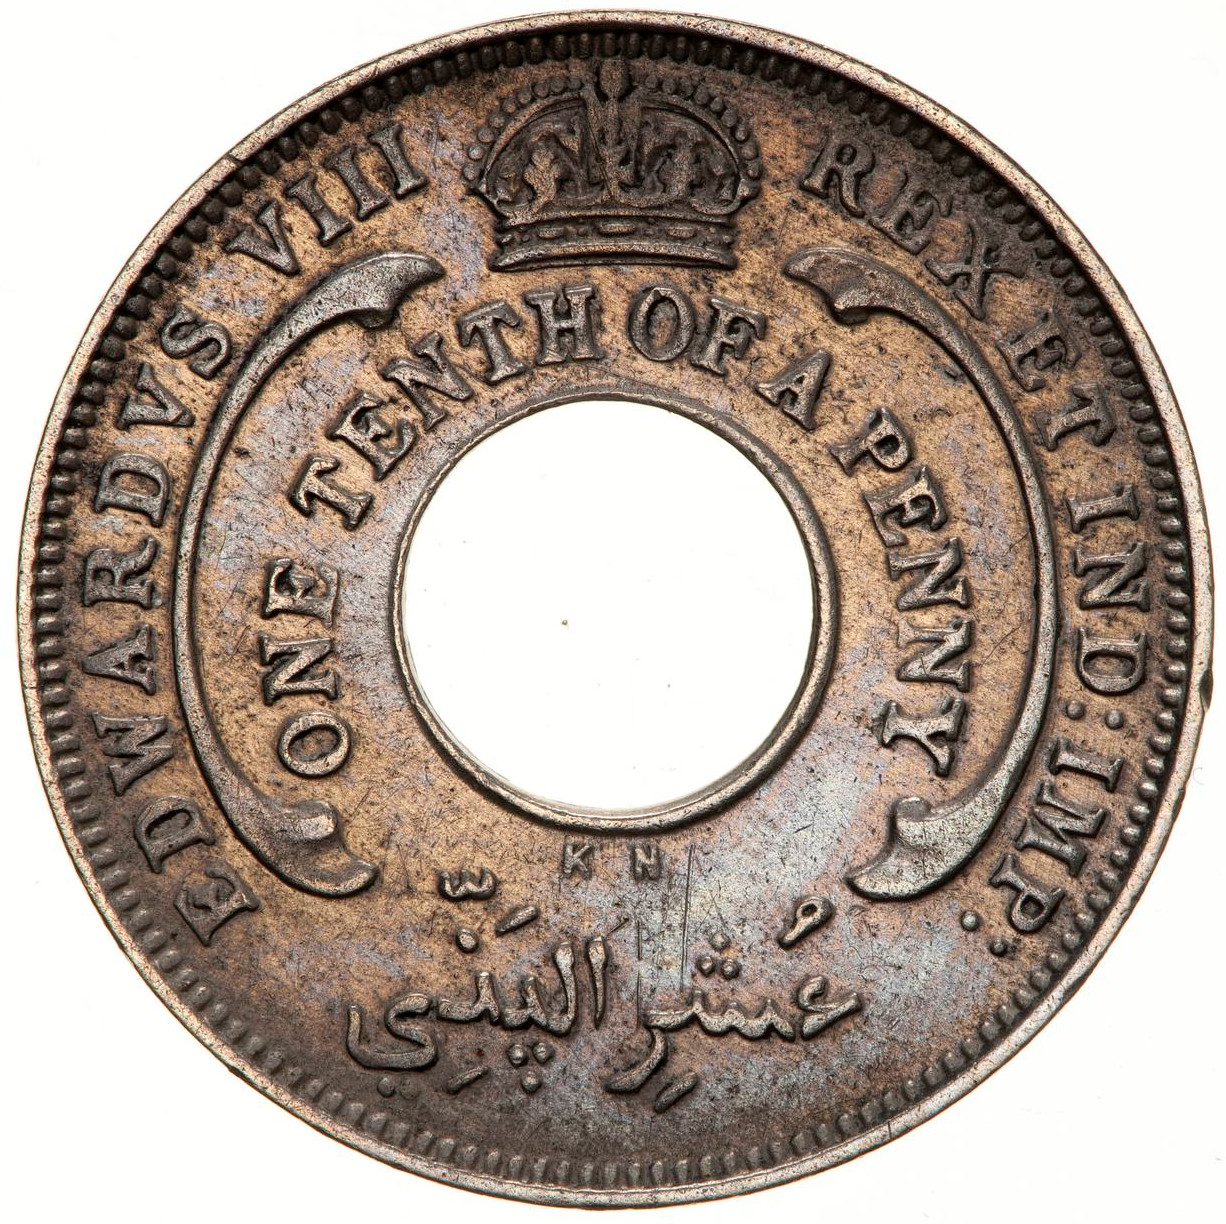 One-tenth Penny (CuproNickel, Edward VIII): Photo Coin - 1/10 Penny, British West Africa, 1936